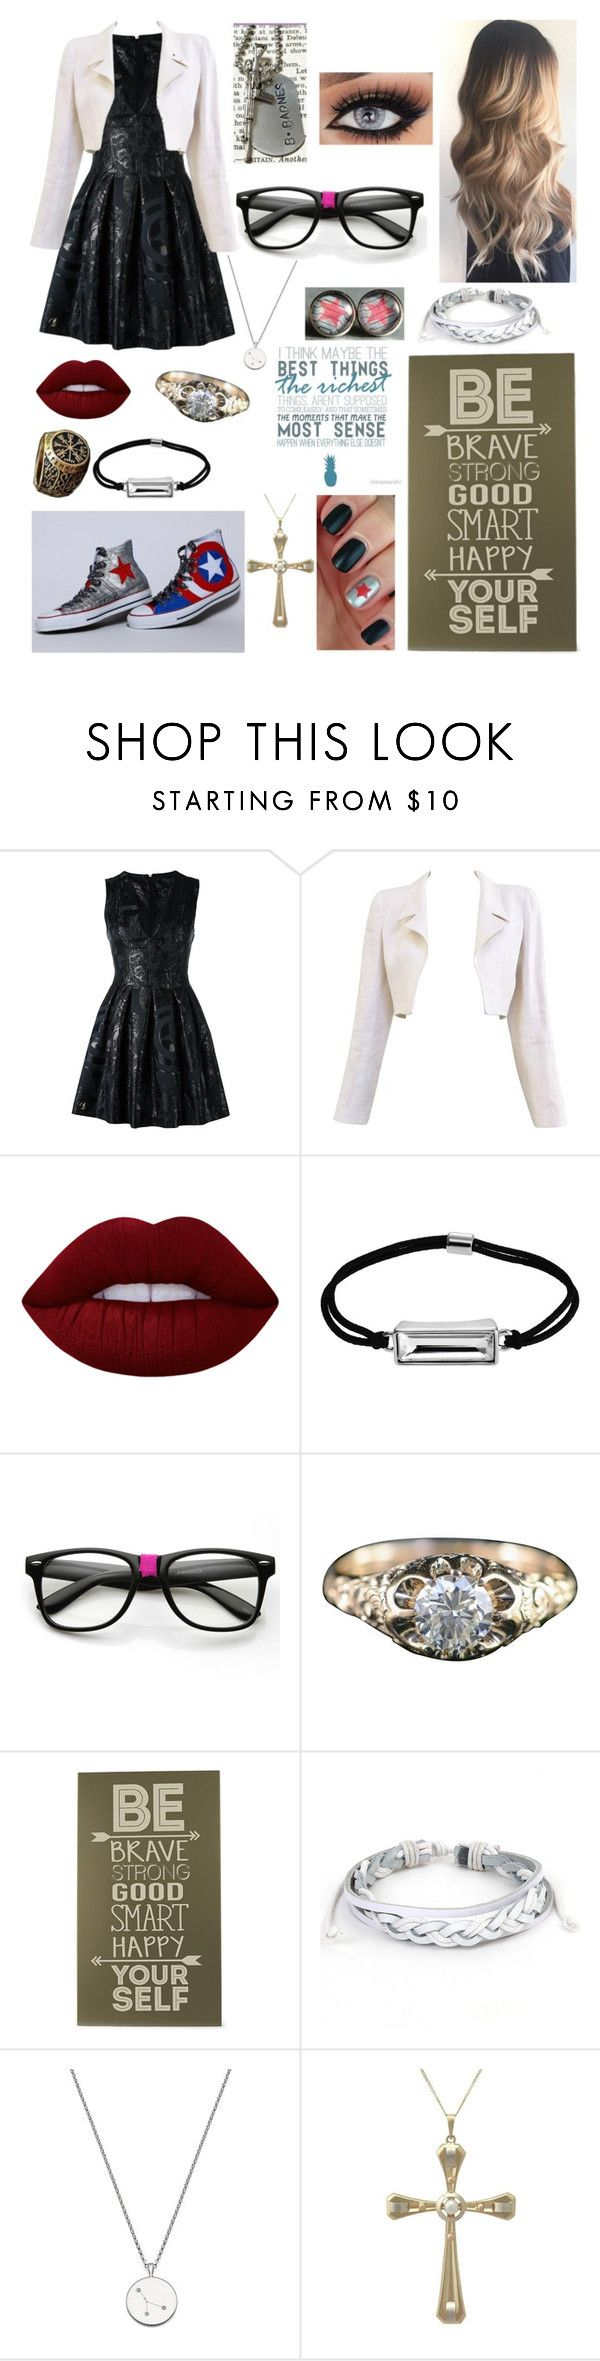 """""""Bored. Bored. Bored."""" by caketime ❤ liked on Polyvore featuring Philipp Plein, Chanel, Lime Crime, Journee Collection, Home Decorators Collection, West Coast Jewelry and Harry Rocks"""